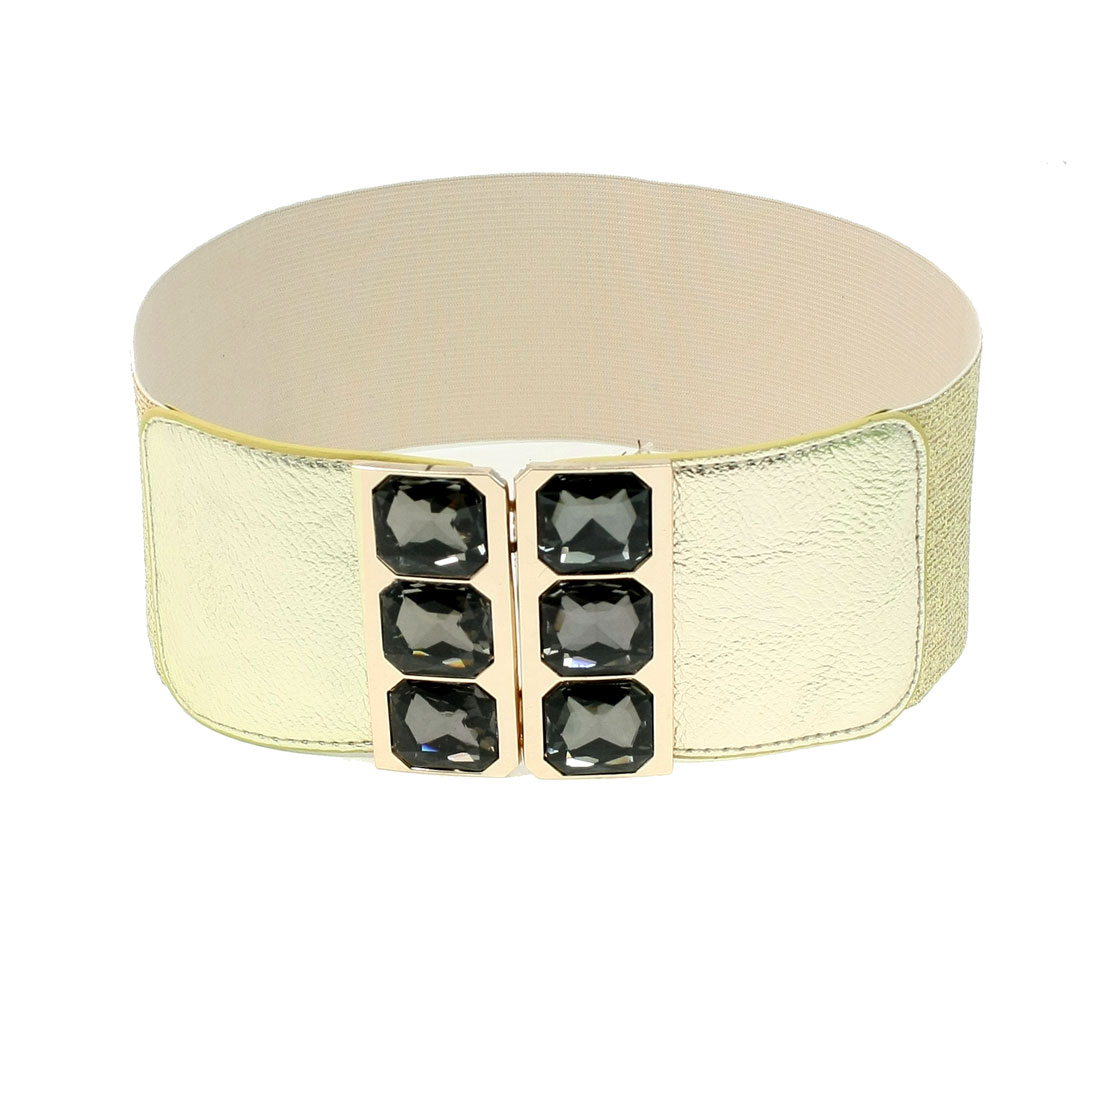 Faceted Crystal Interlocking Buckle 8cm Wide Elastic Cinch Belt Gold Tone